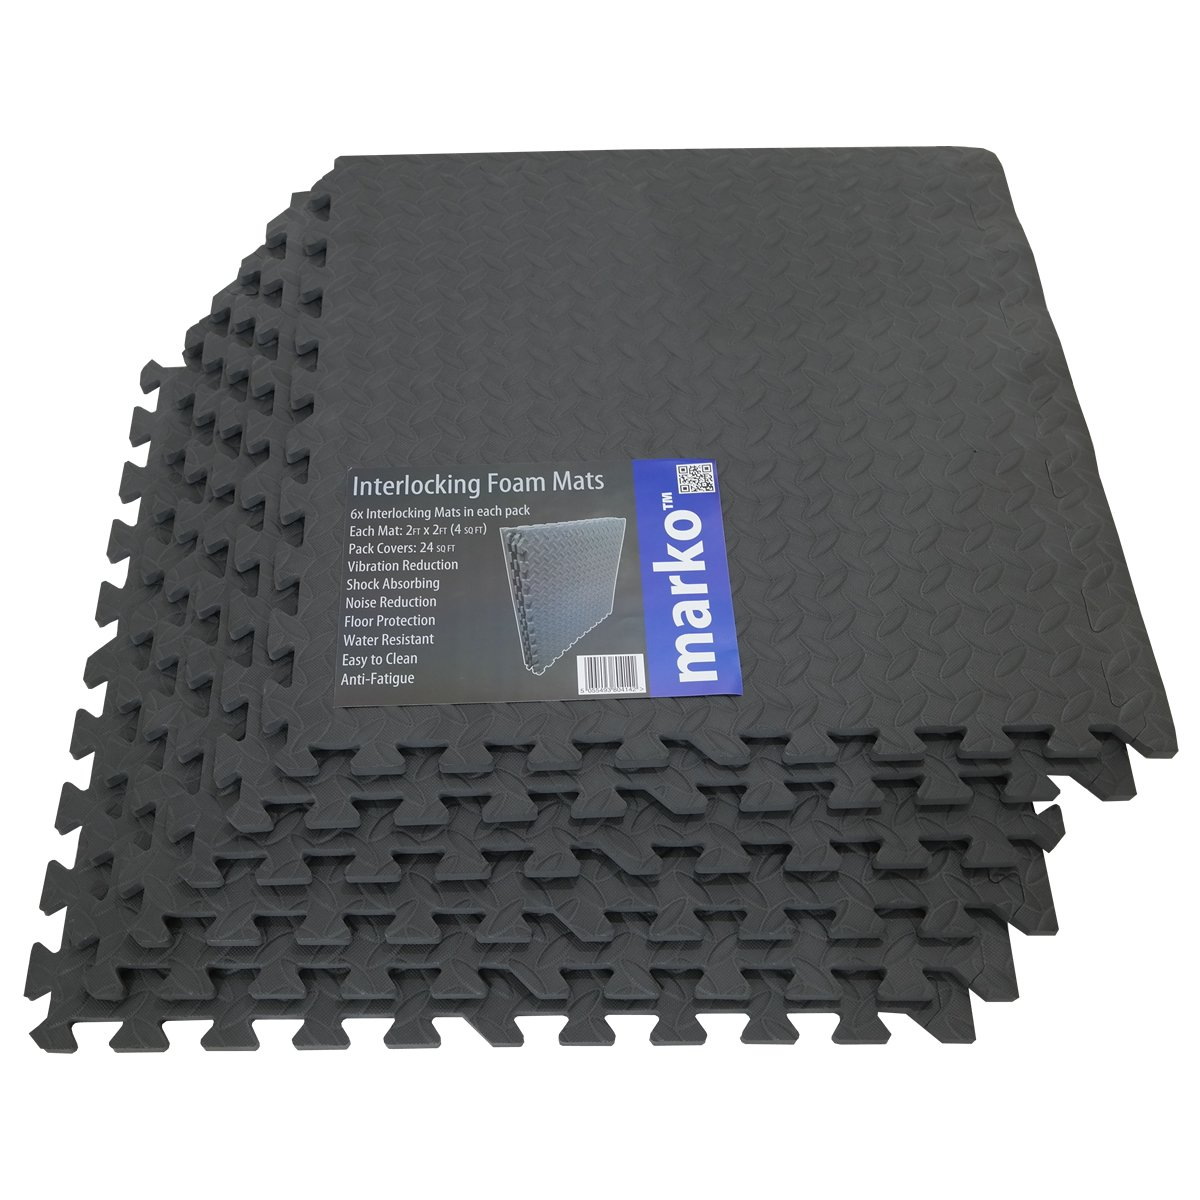 all tile tiles for rubber mats floor carpet ideas gallery exercise gym mat commercial flooringindustrial kinds industrial fitness flooring decoration